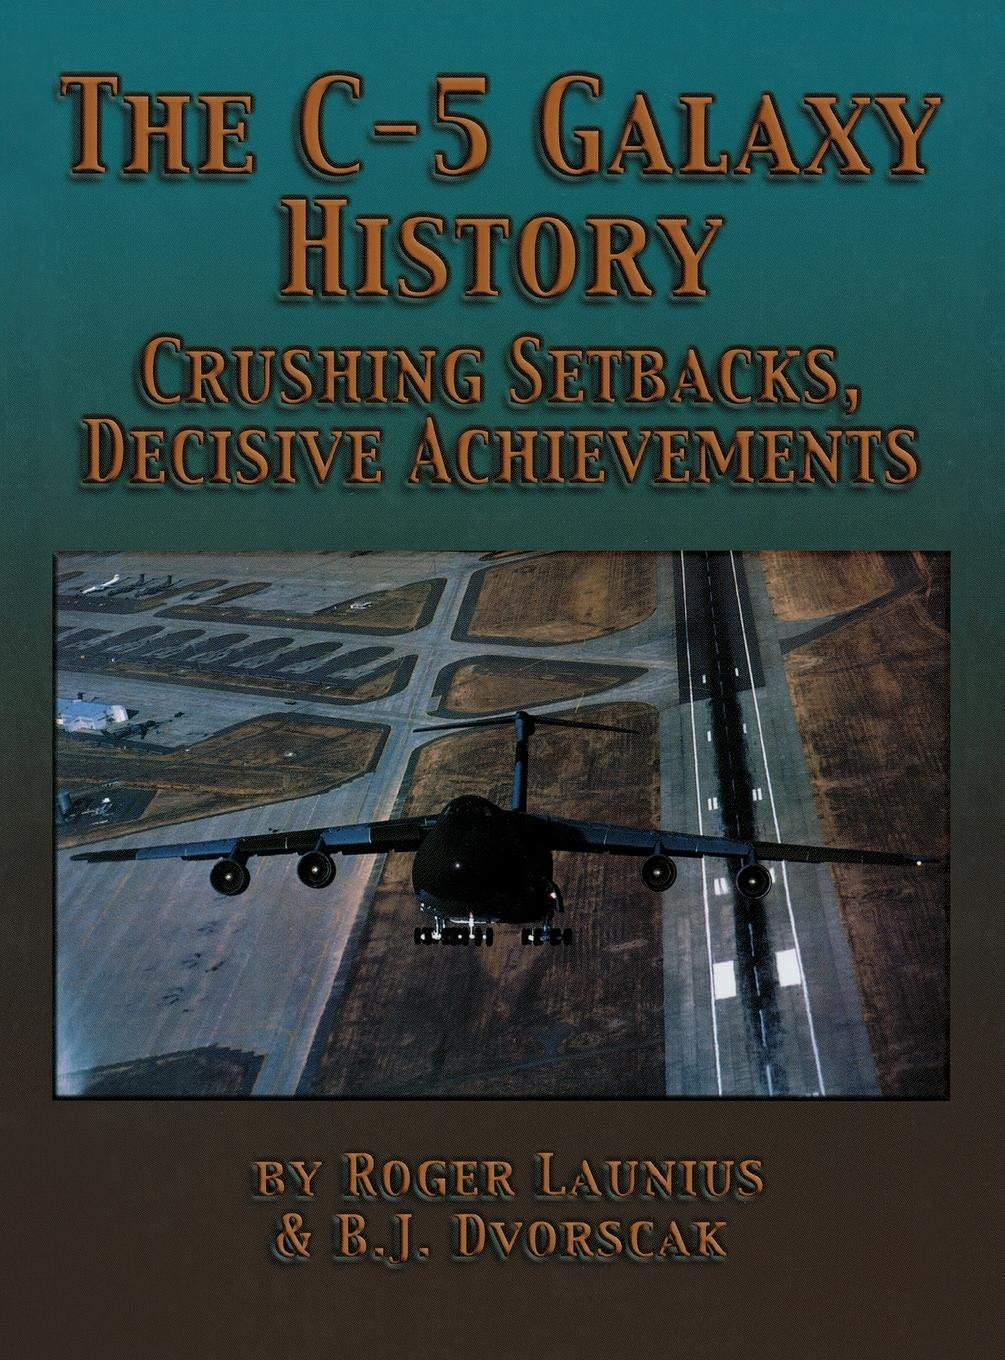 the-c-5-galaxy-history-crushing-setbacks-decisive-achievements